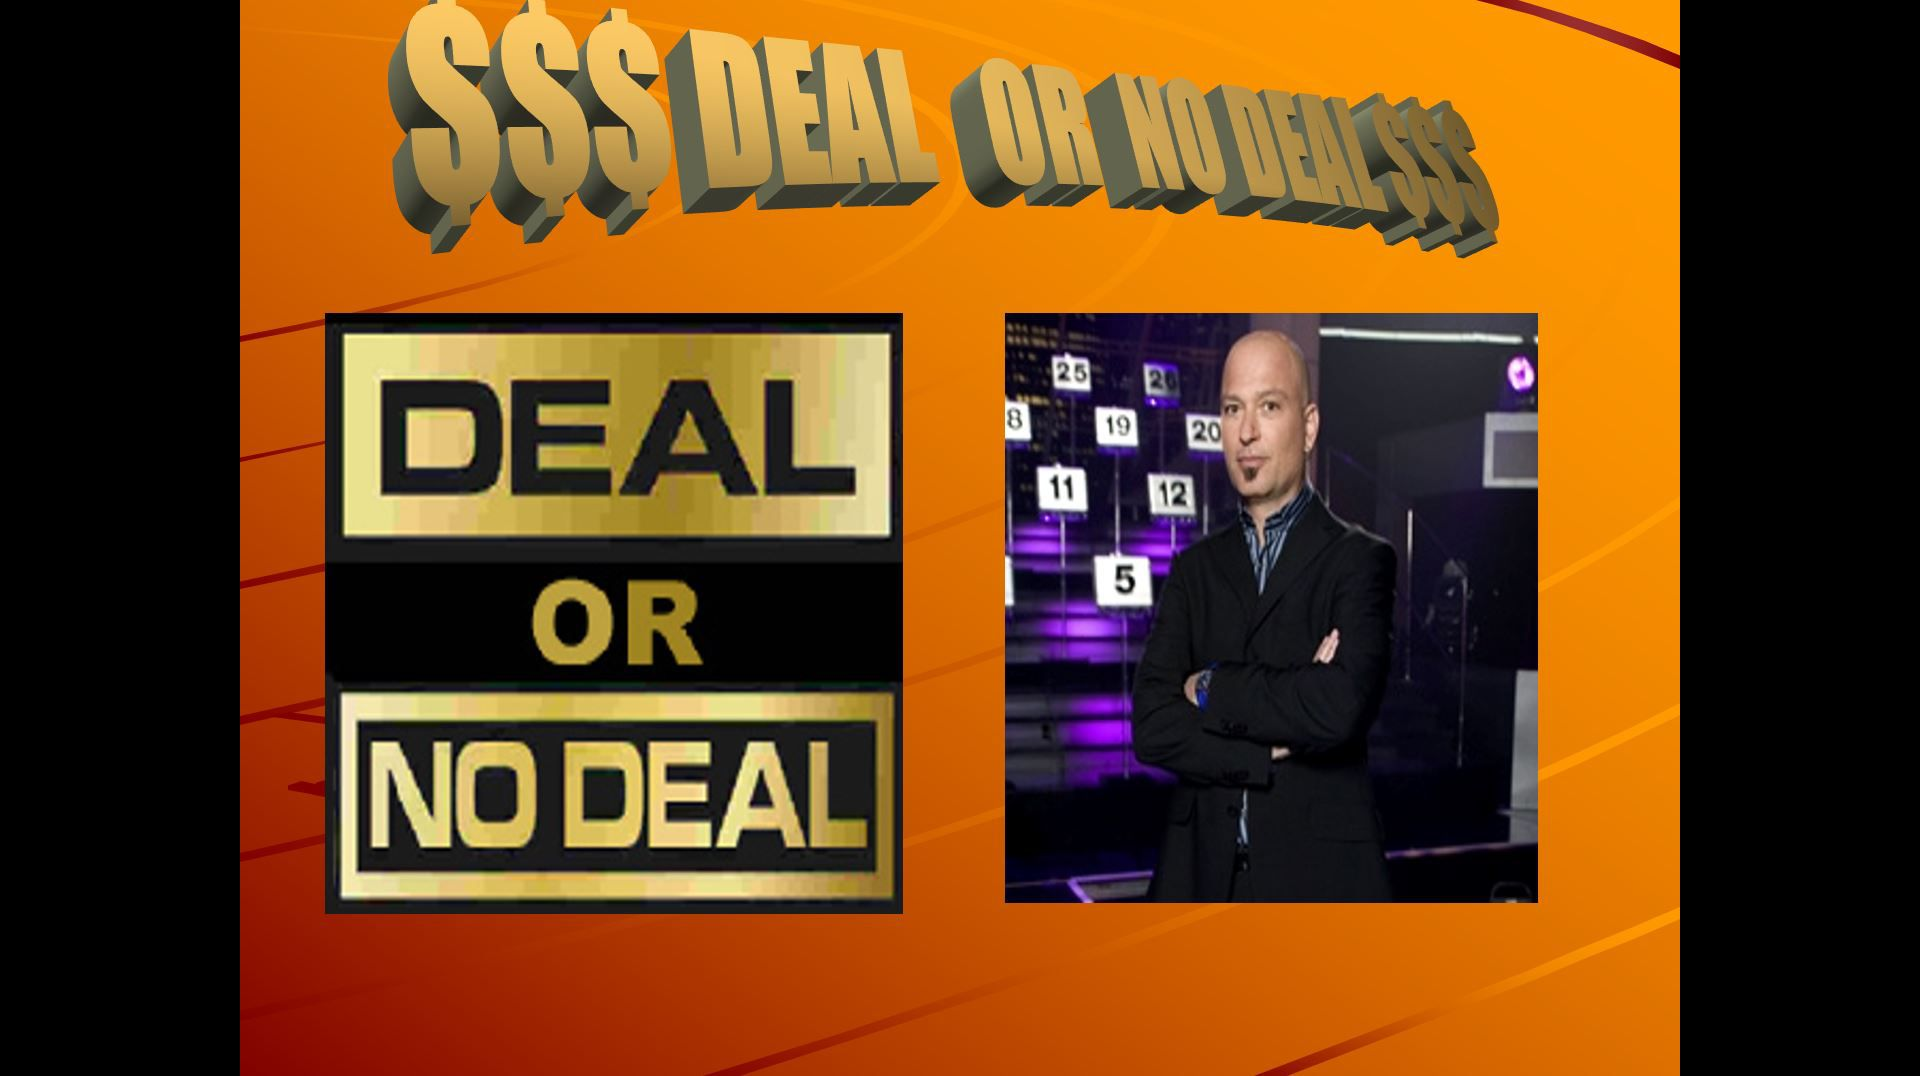 A Deal or No Deal PowerPoint template opening screen.